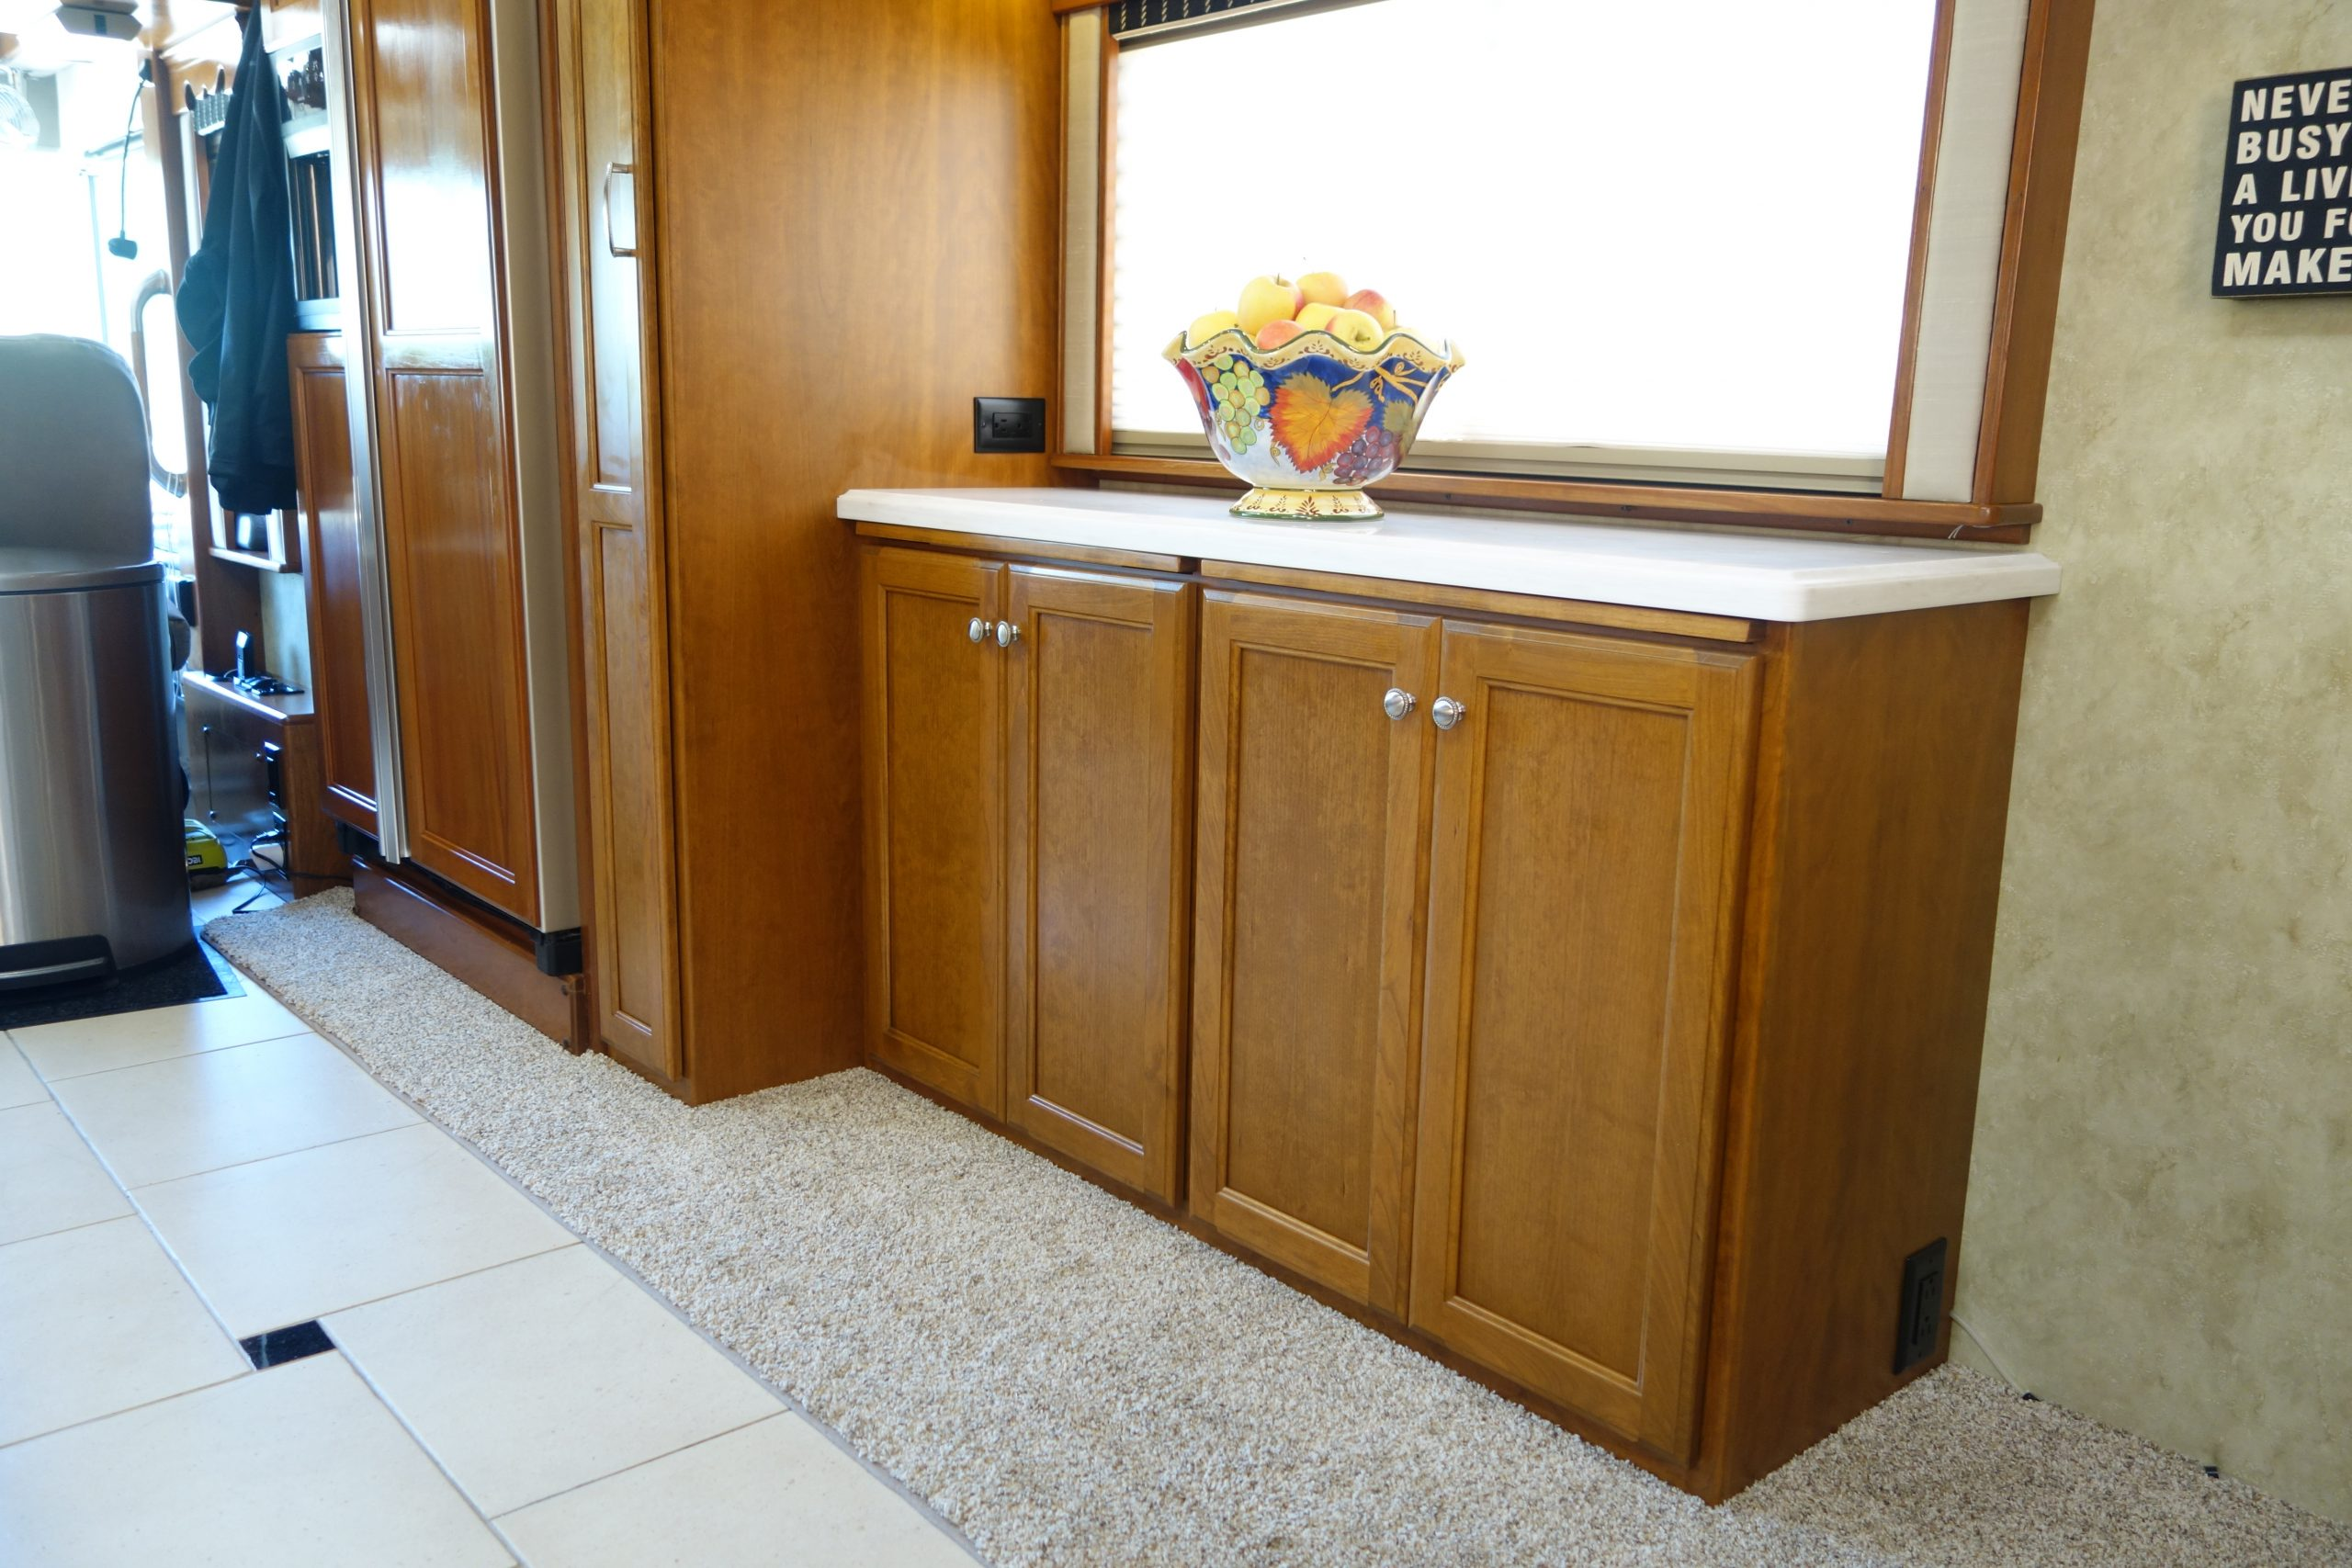 Custom RV cabinets under window